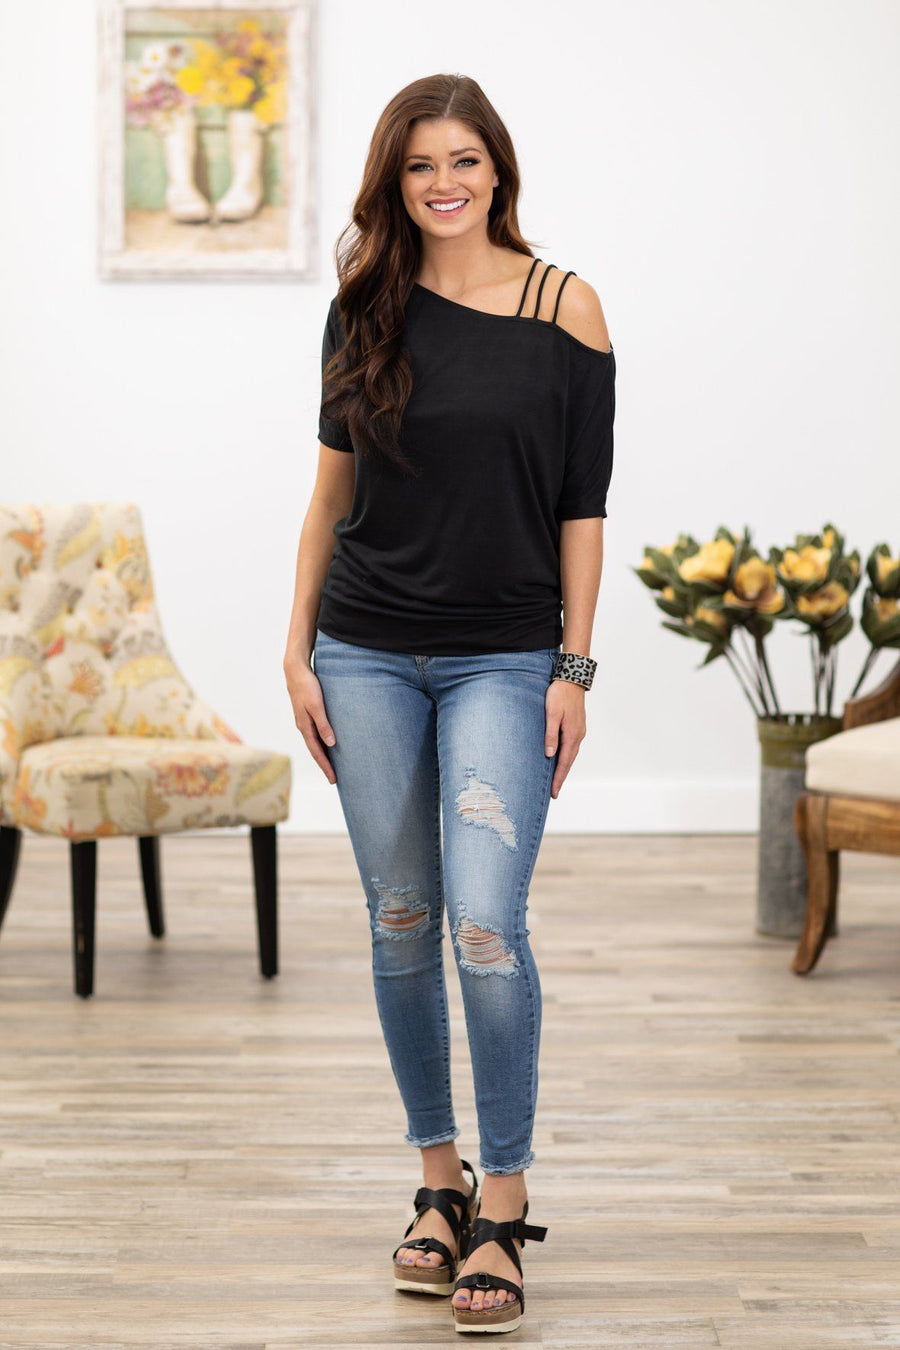 b6b7a0aeb5835 Get You Out of My Head Short Sleeve Strappy Cold Shoulder Top in Black